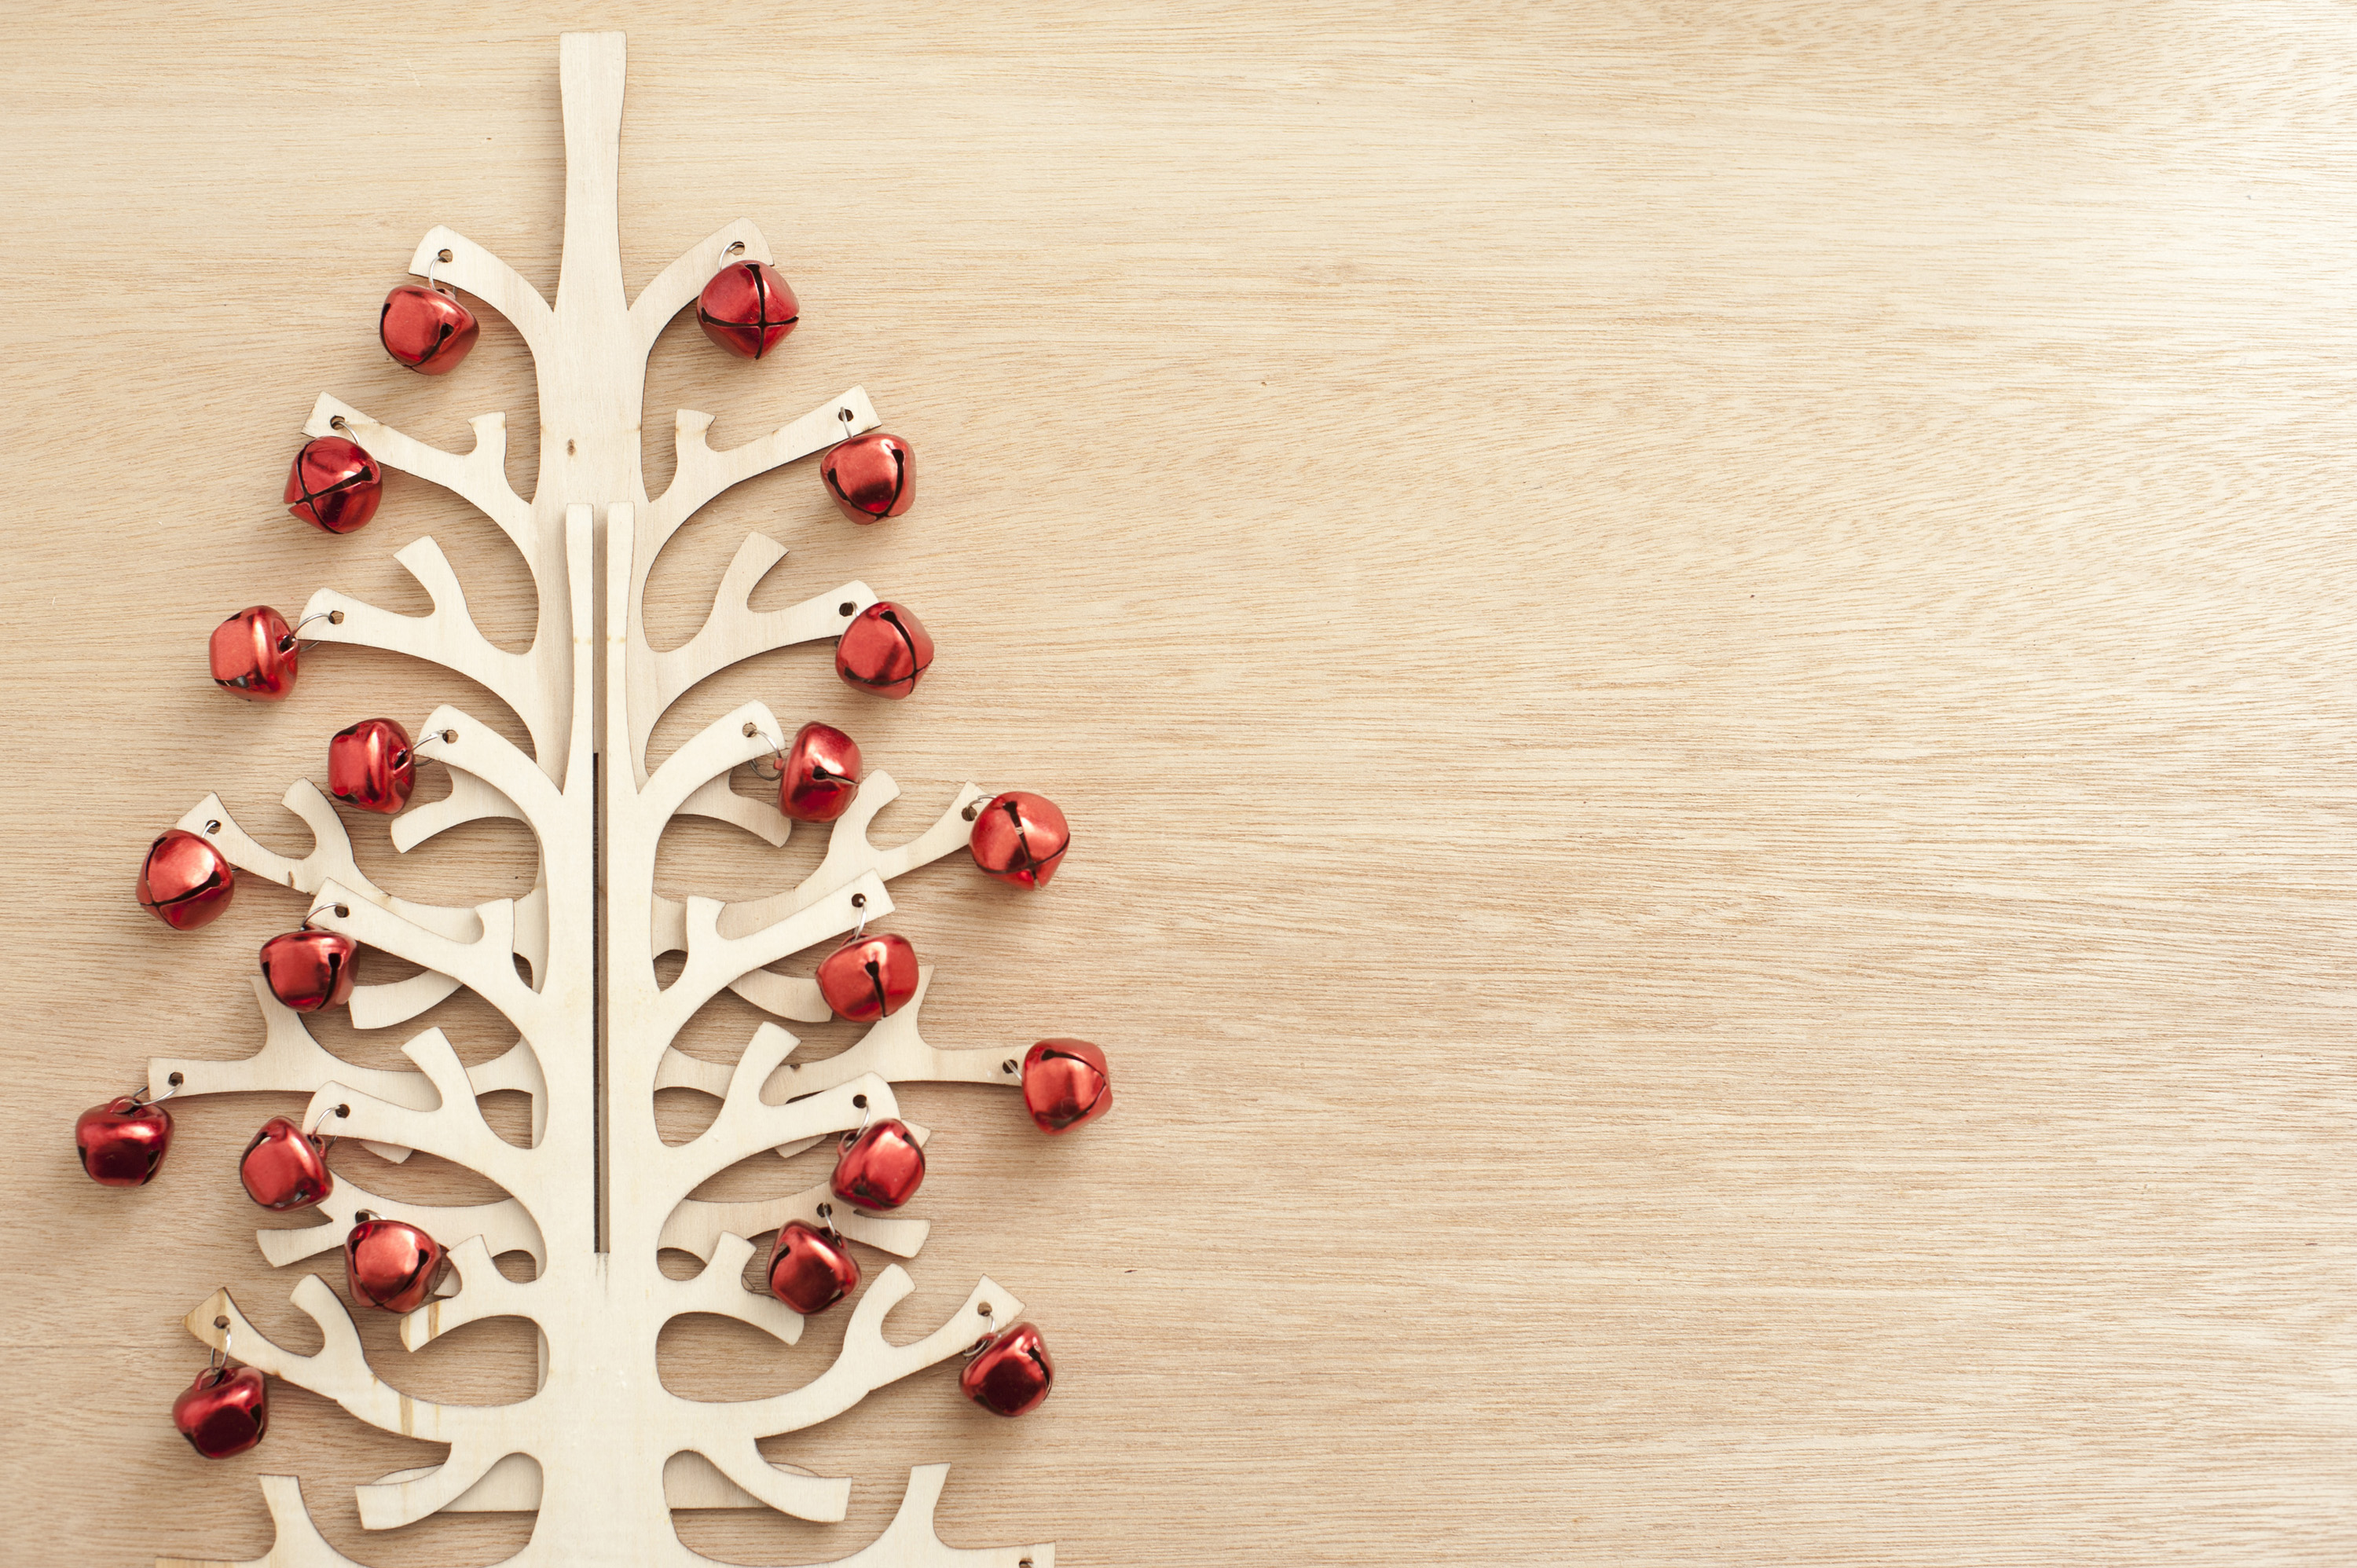 Modern festive decorations, a wooden tree decorated with red Christmas balls lying on wooden table. From above